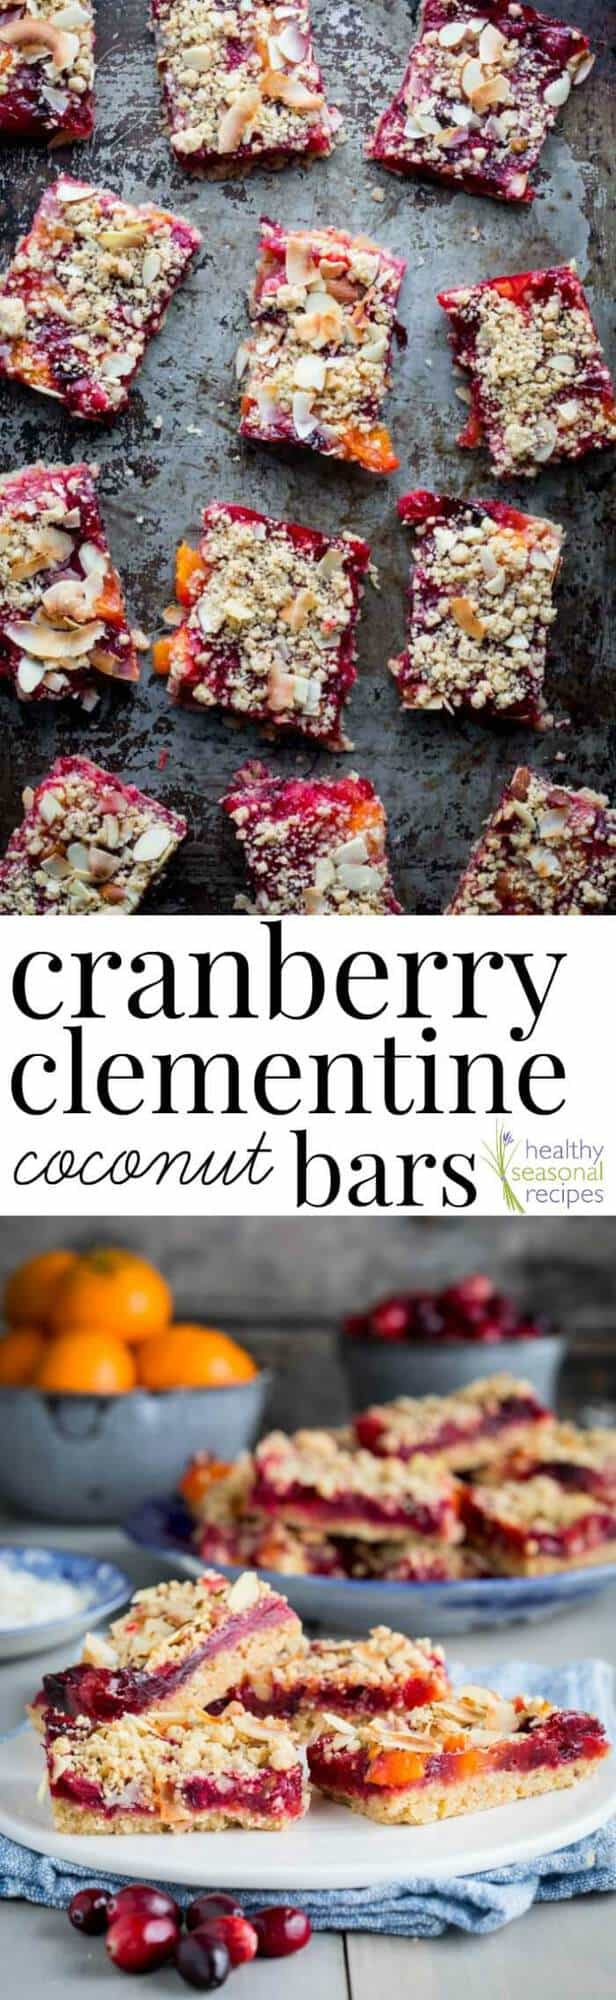 These tender and sweet tart Cranberry Crumb Bars with Coconut and Clementine are a sure hit for holiday baking desserts and snacks | Healthy Seasonal Recipes #christmas #baking #dessert #snack #cranberry #clementine